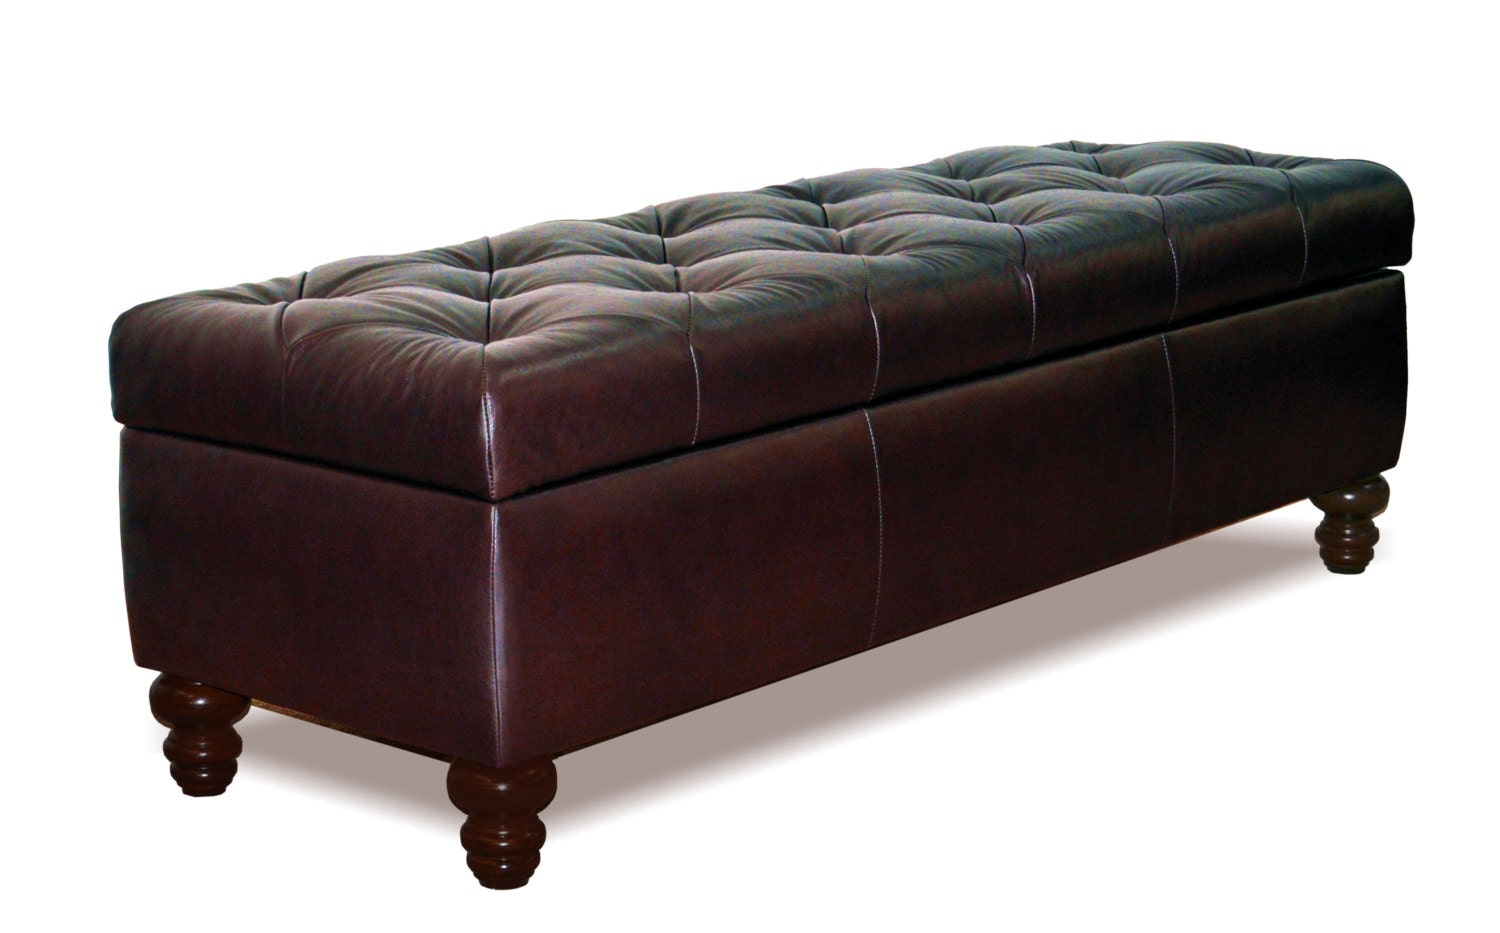 King Size Chesterfield Storage Bench Button Tufted